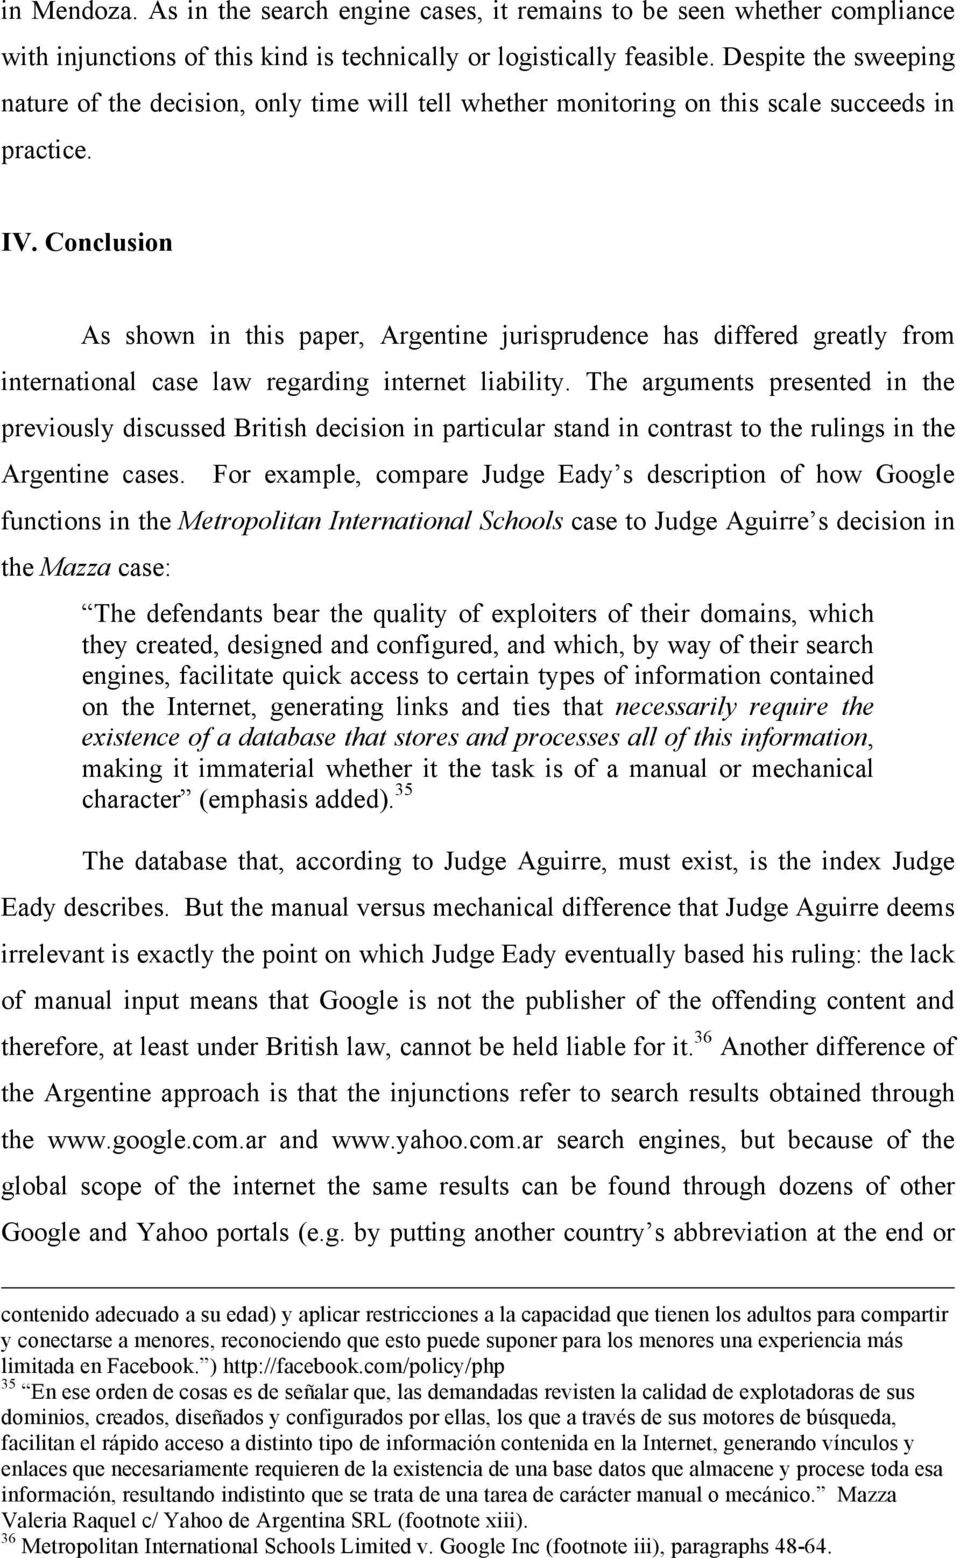 Conclusion As shown in this paper, Argentine jurisprudence has differed greatly from international case law regarding internet liability.